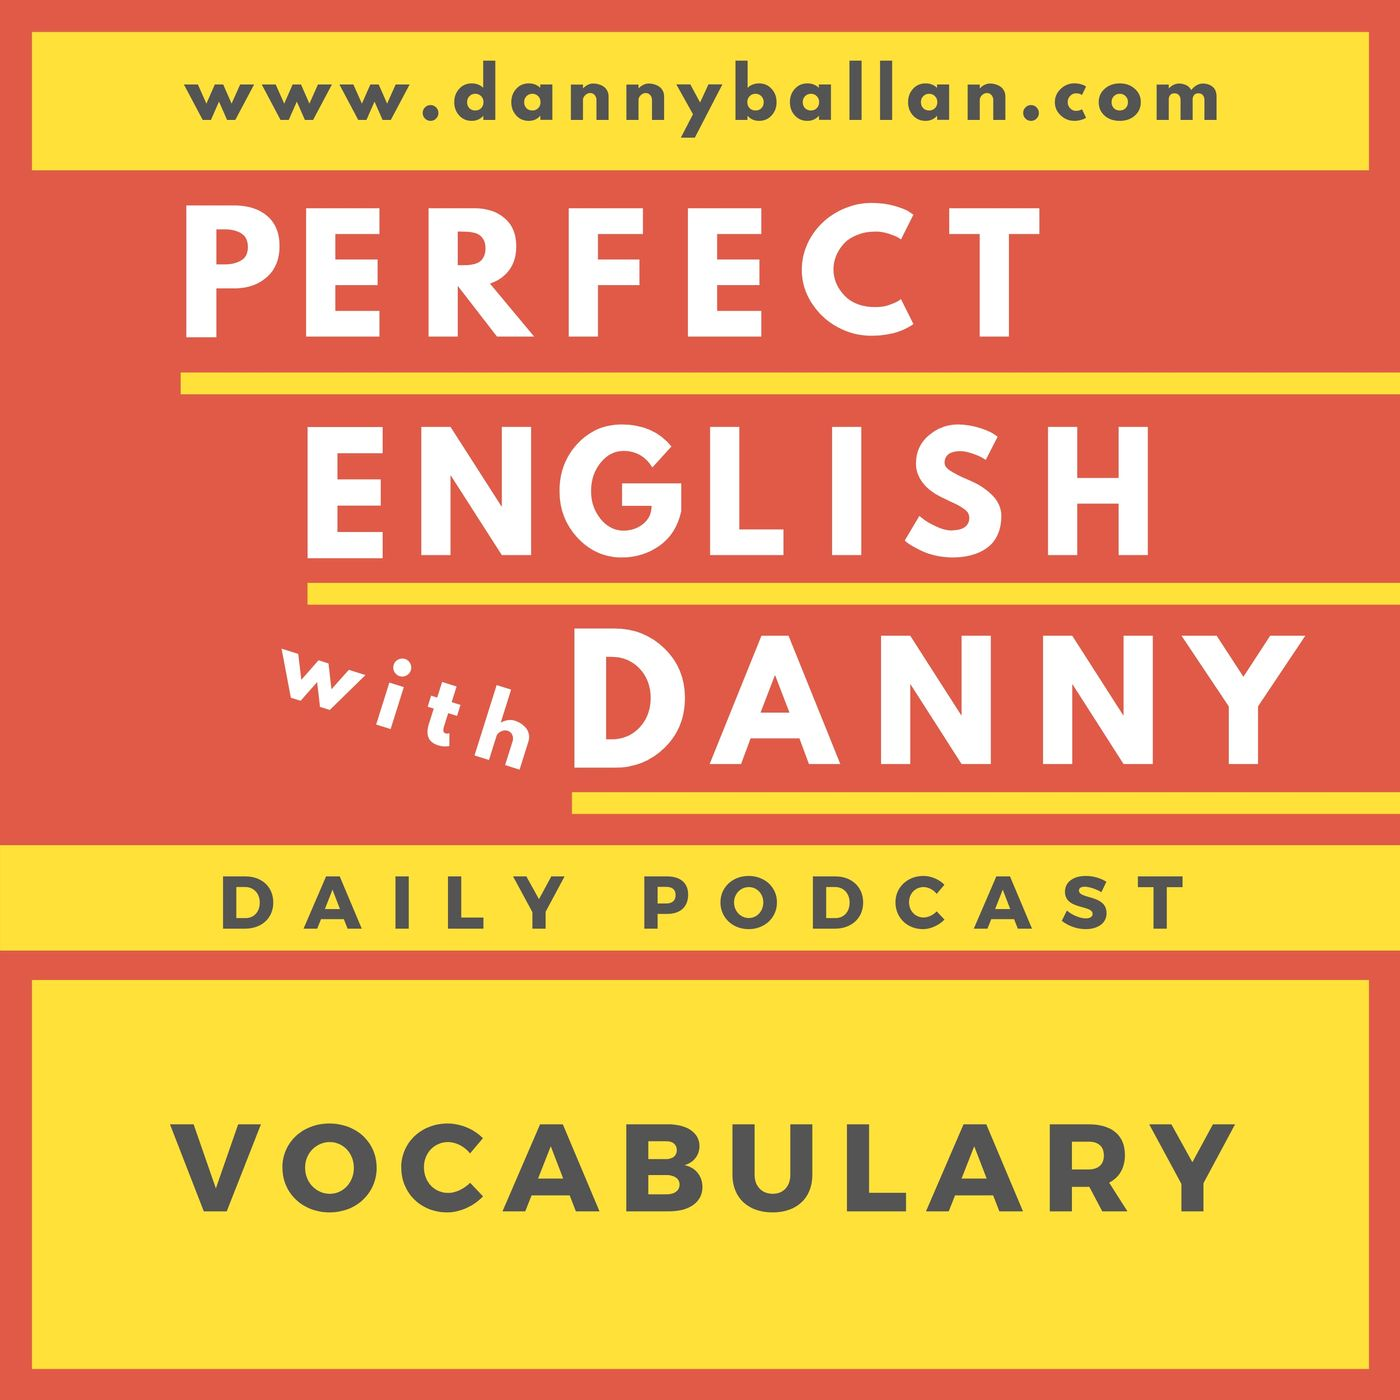 Episode 69 - Vocabulary: Talking about Food